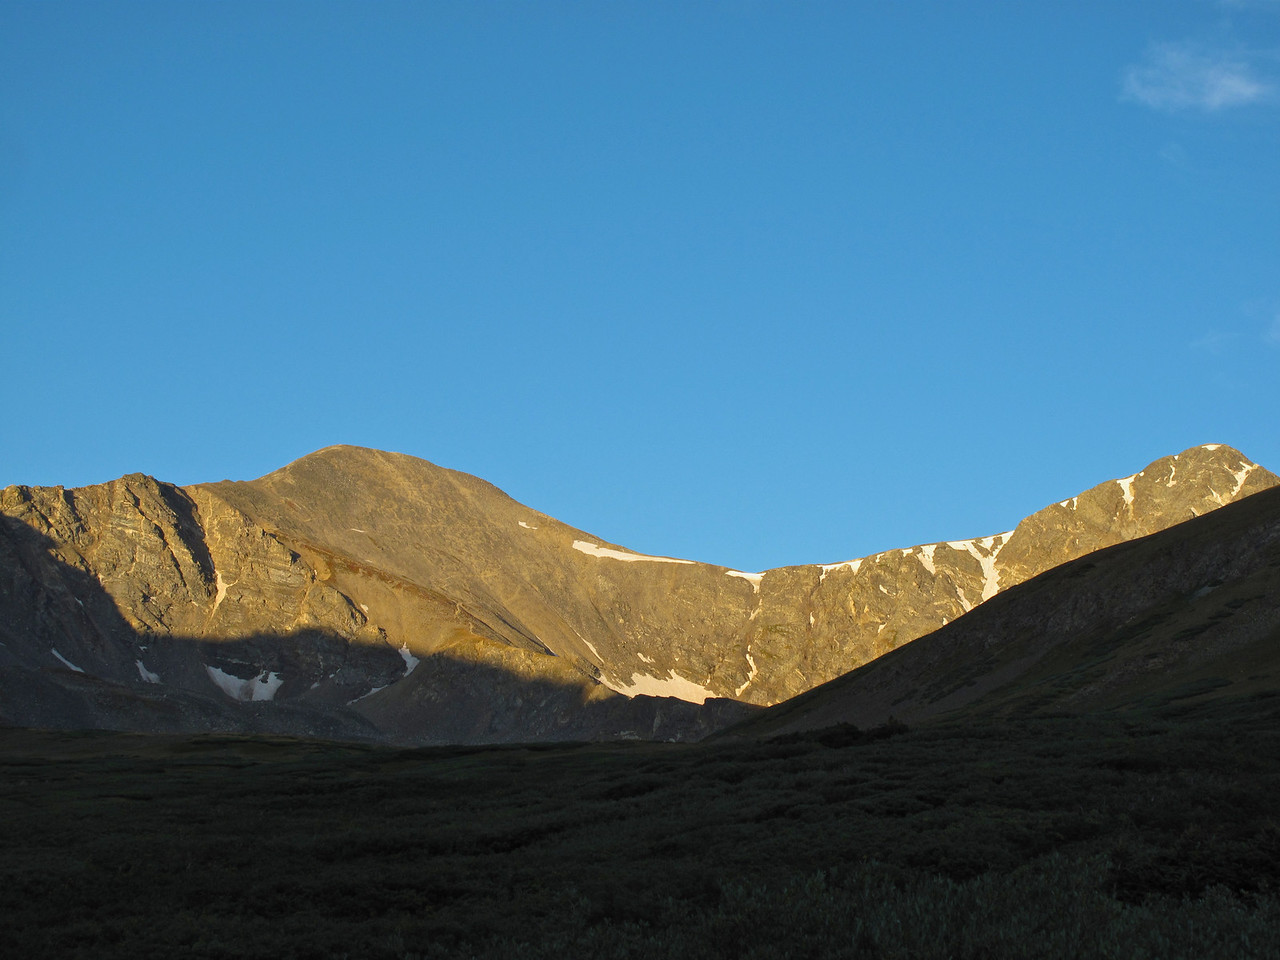 Gray's is the highest peak on the Continental Divide in the United States at 14,270 ft.